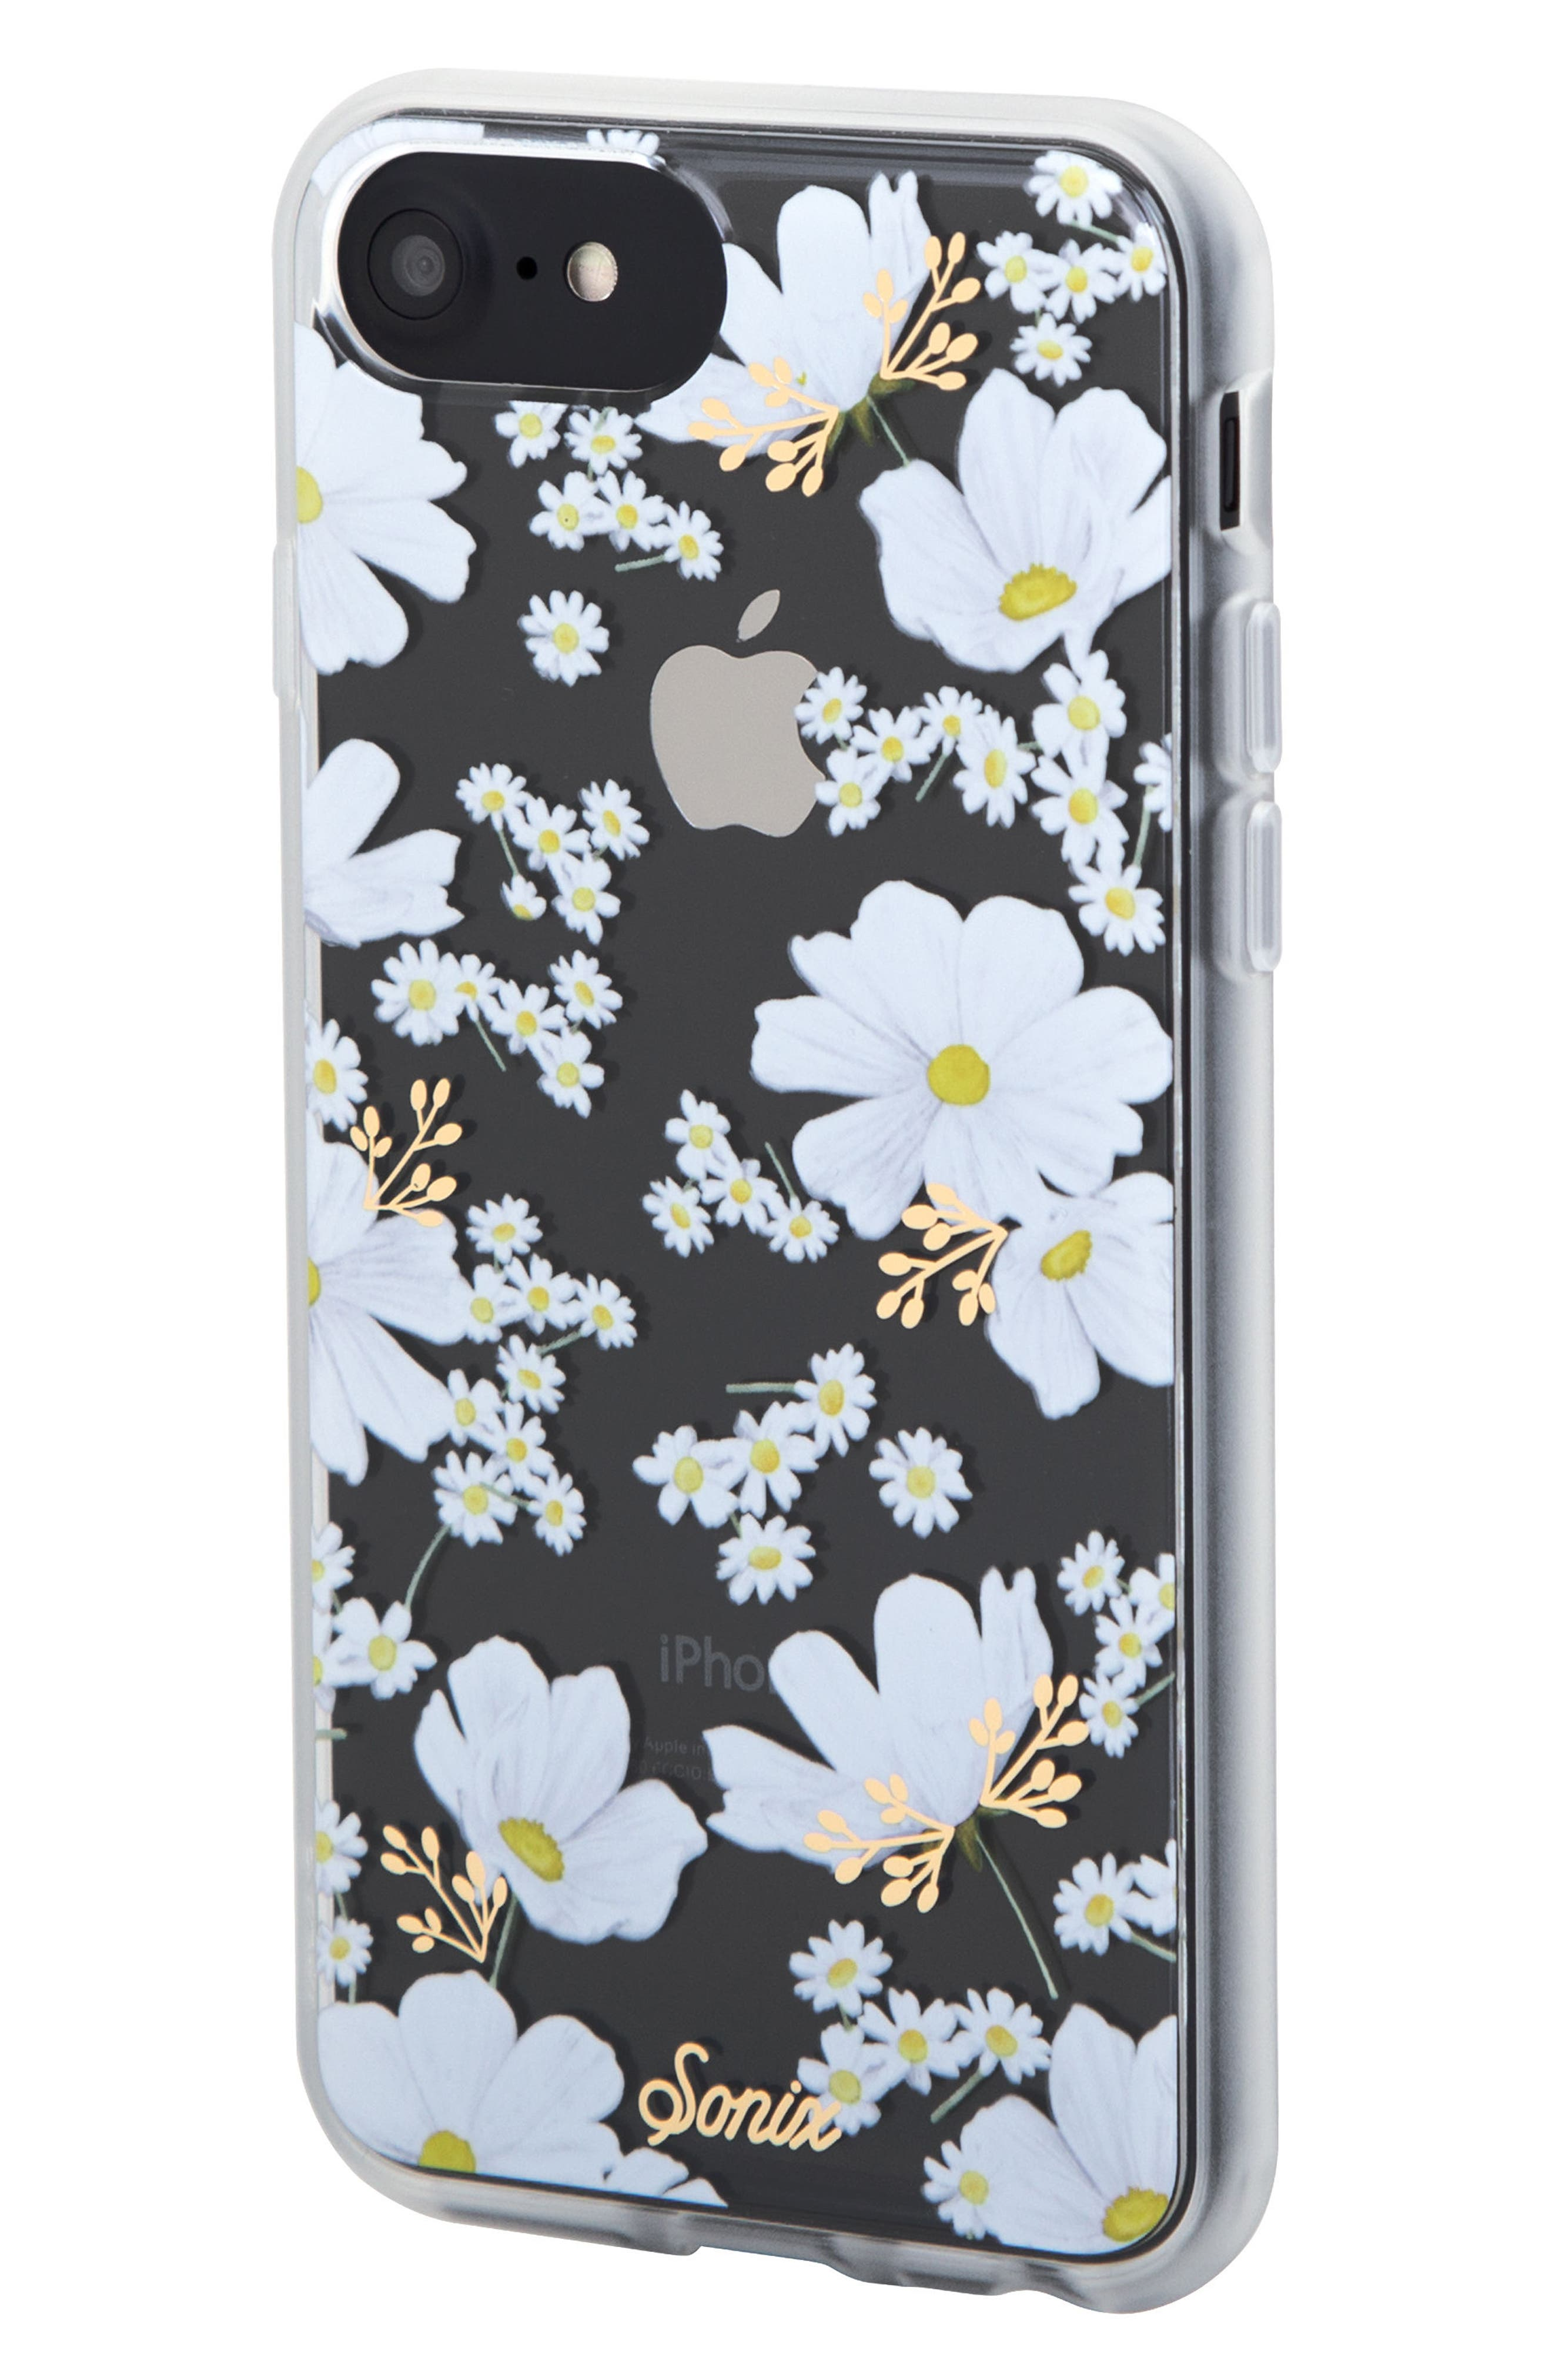 Ditsy Daisy iPhone 6 /6S/7/8 & 6/6s7/8 Plus Case,                             Alternate thumbnail 4, color,                             White/ Gold